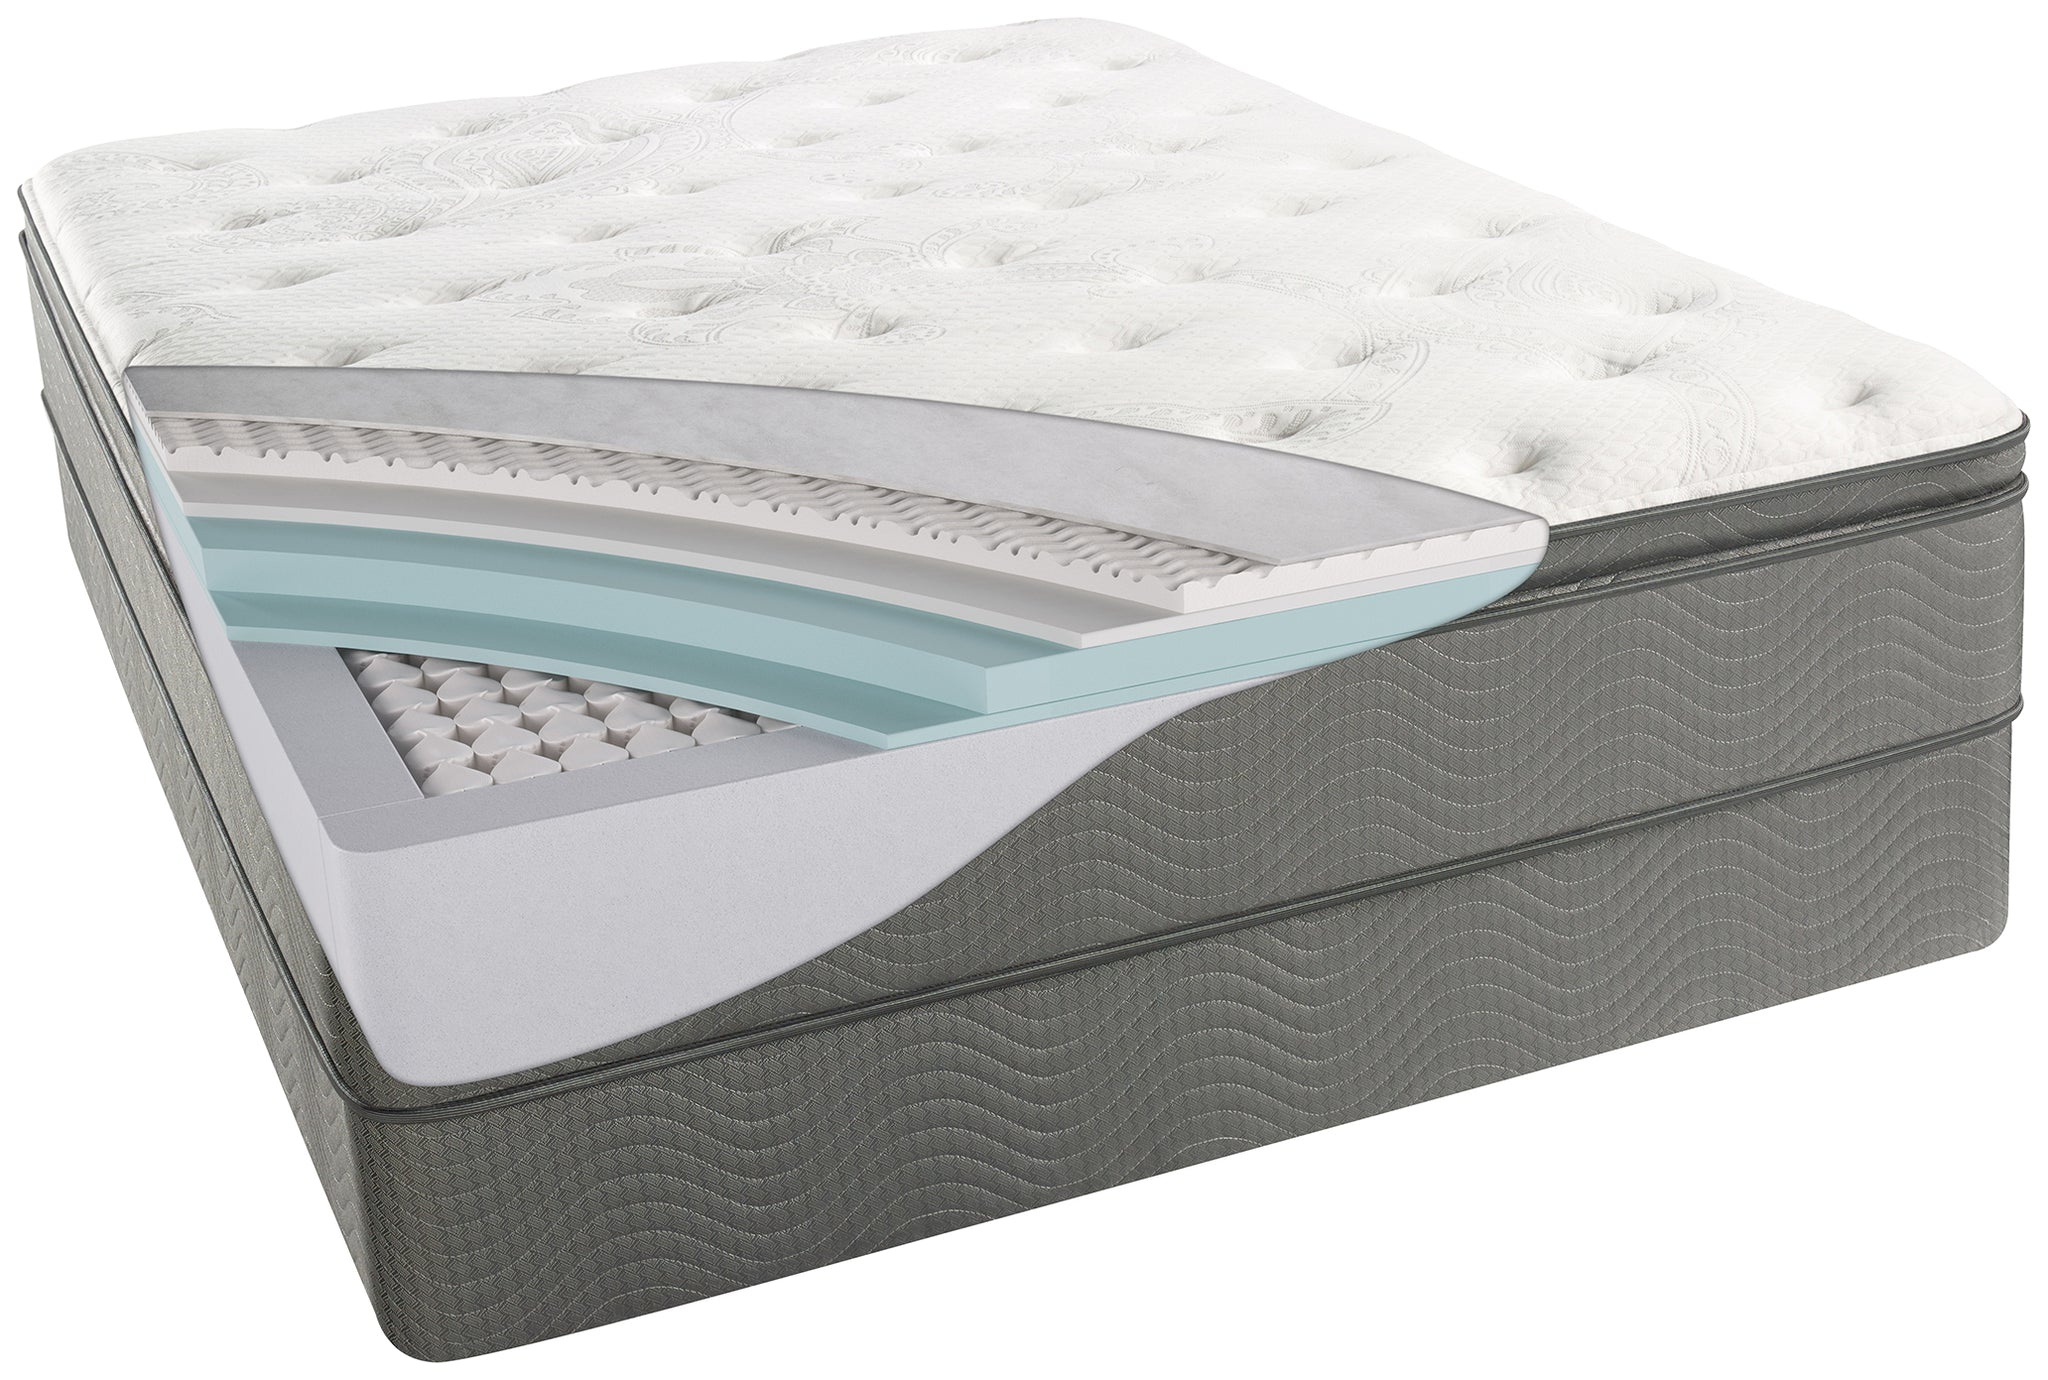 white topper amazon featherbed com hypoallergenic kitchen superior down qmpvl pad pillow plush and dp alternative queen home thick mattress overfilled